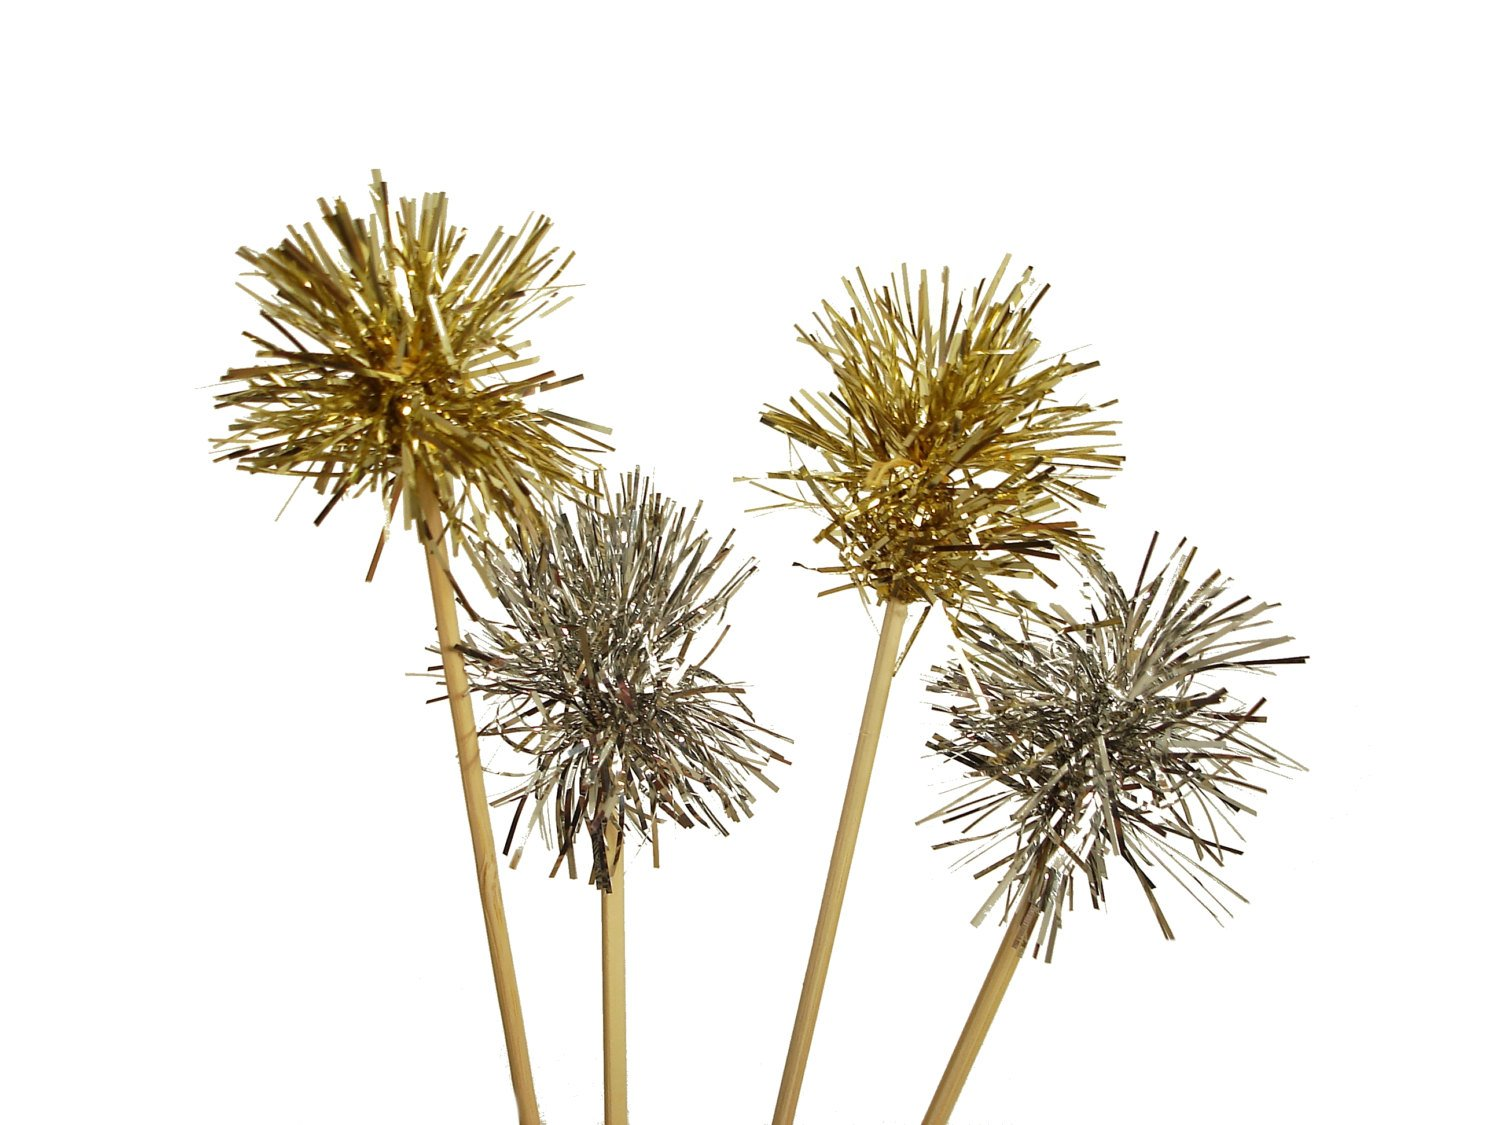 New Years Eve Decorations, tinsel silver and gold drink stirrers